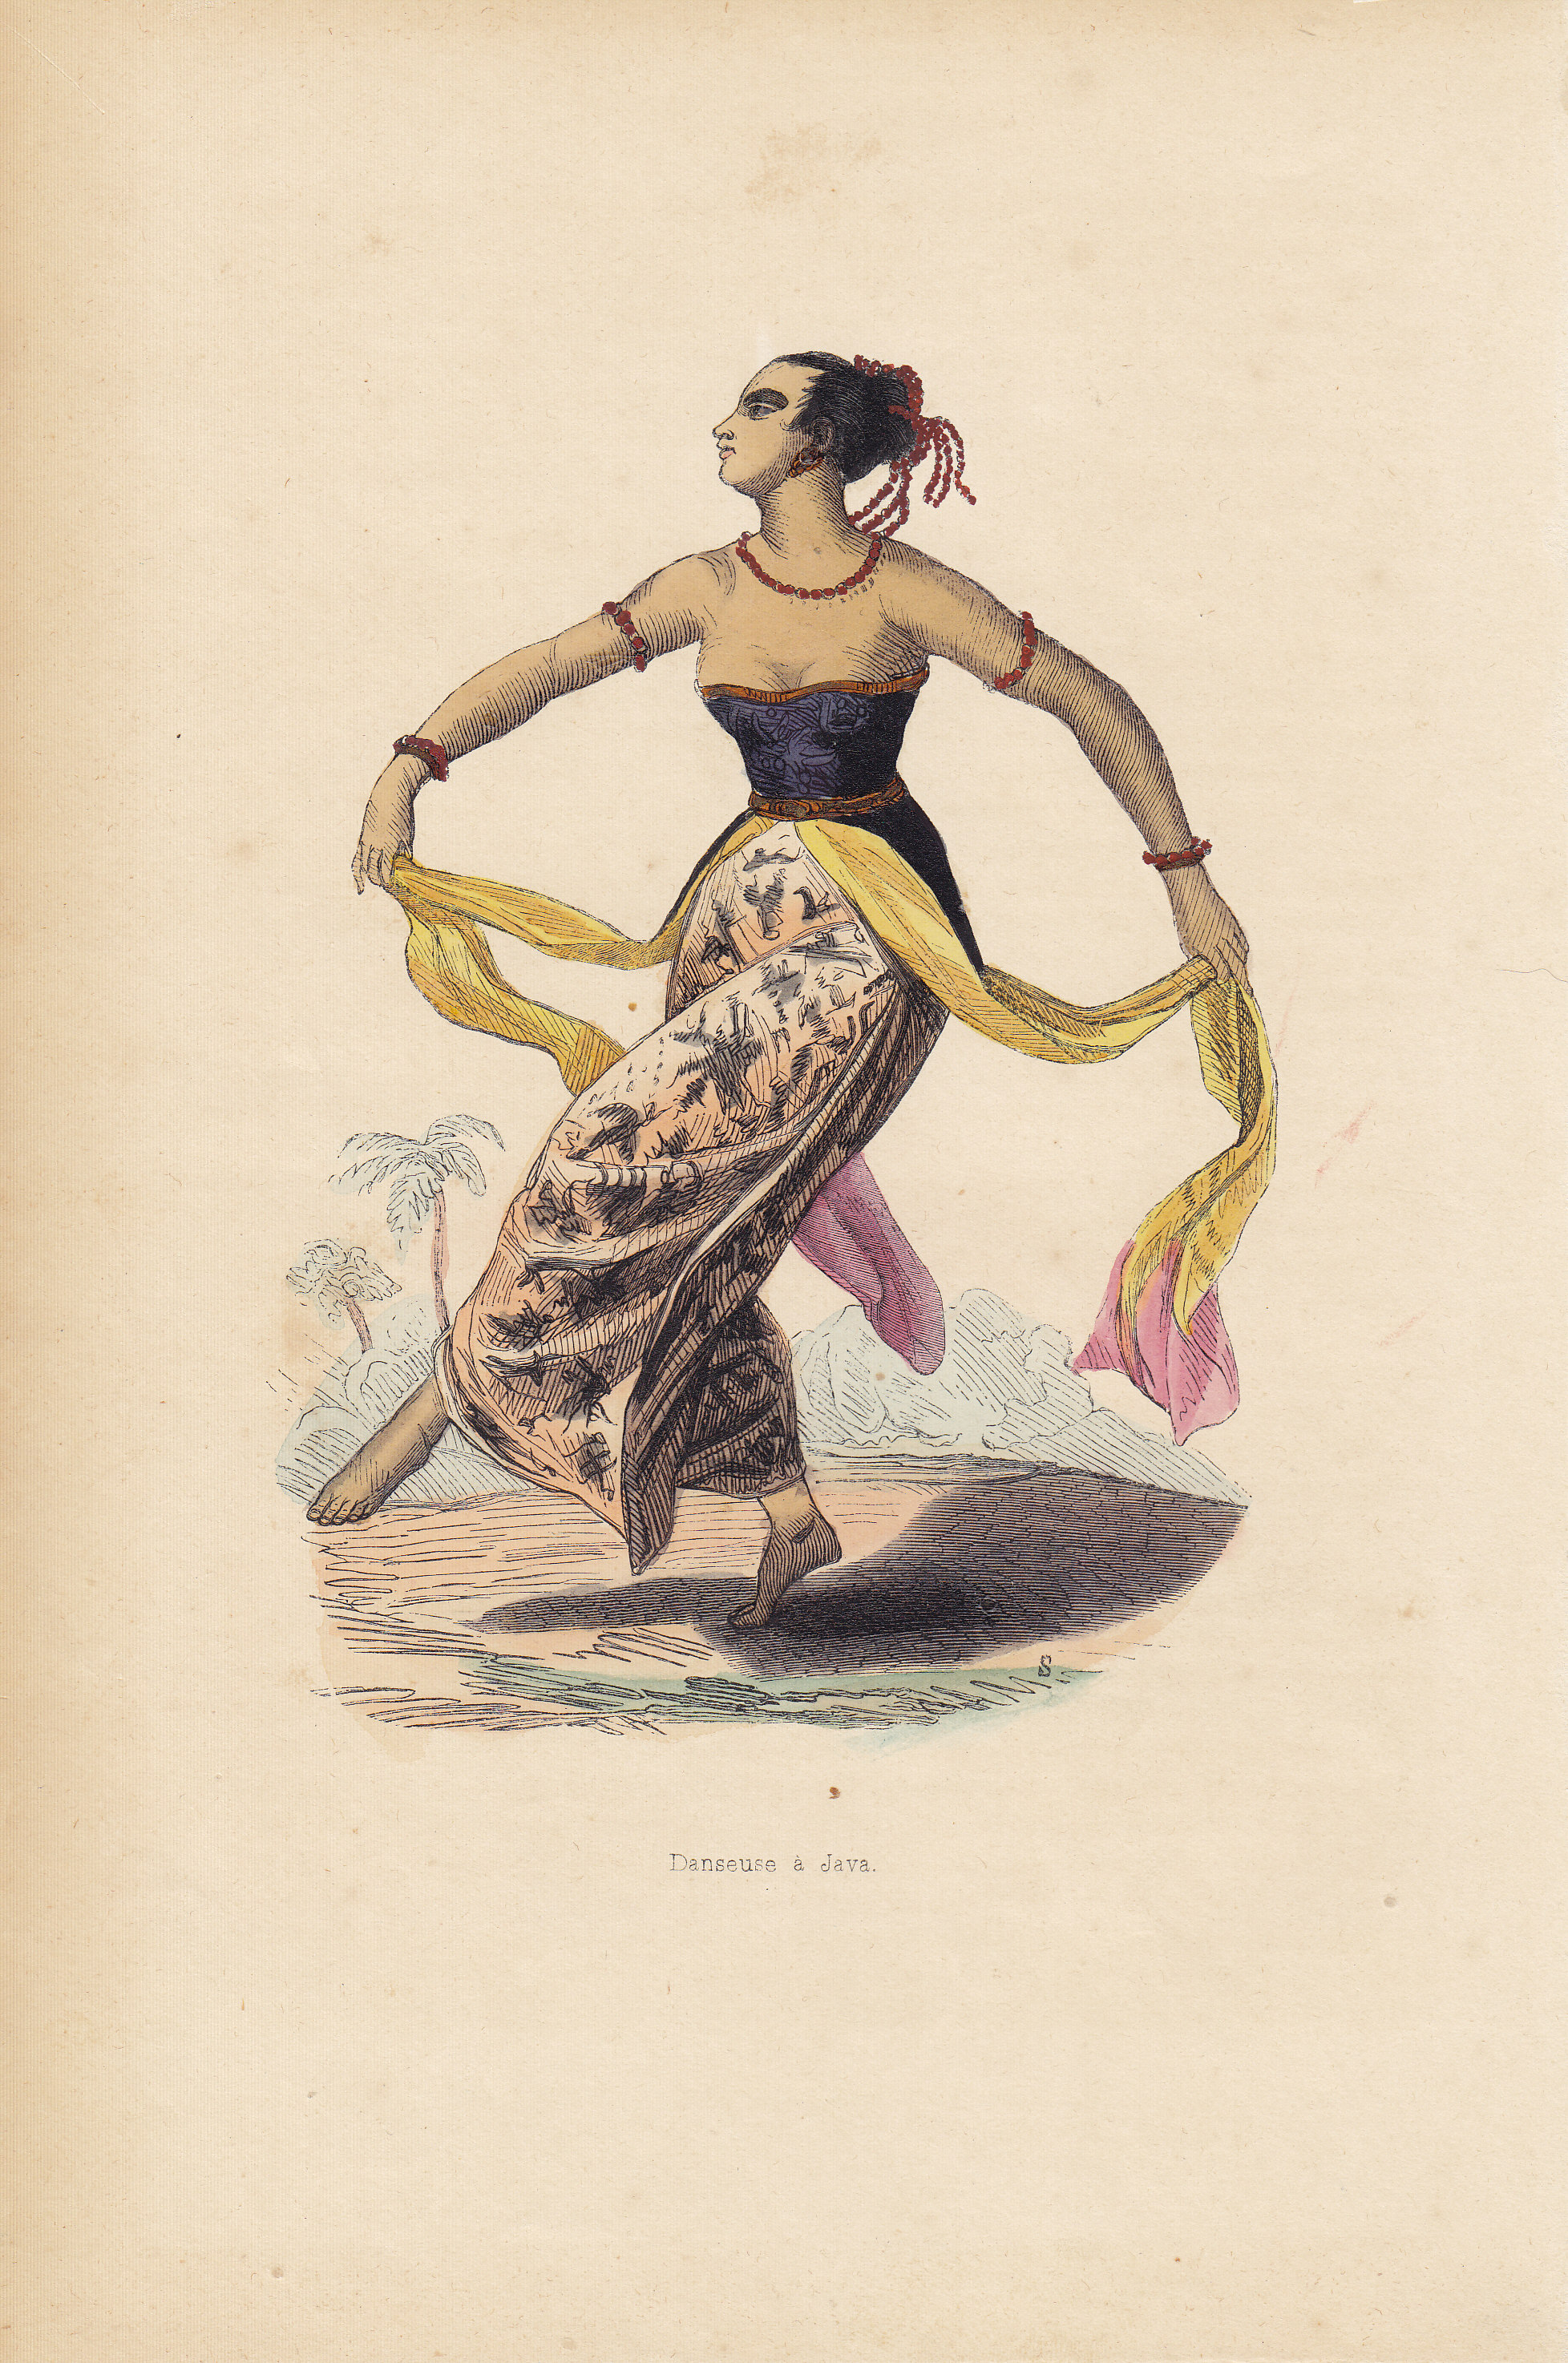 Danseuse a Java